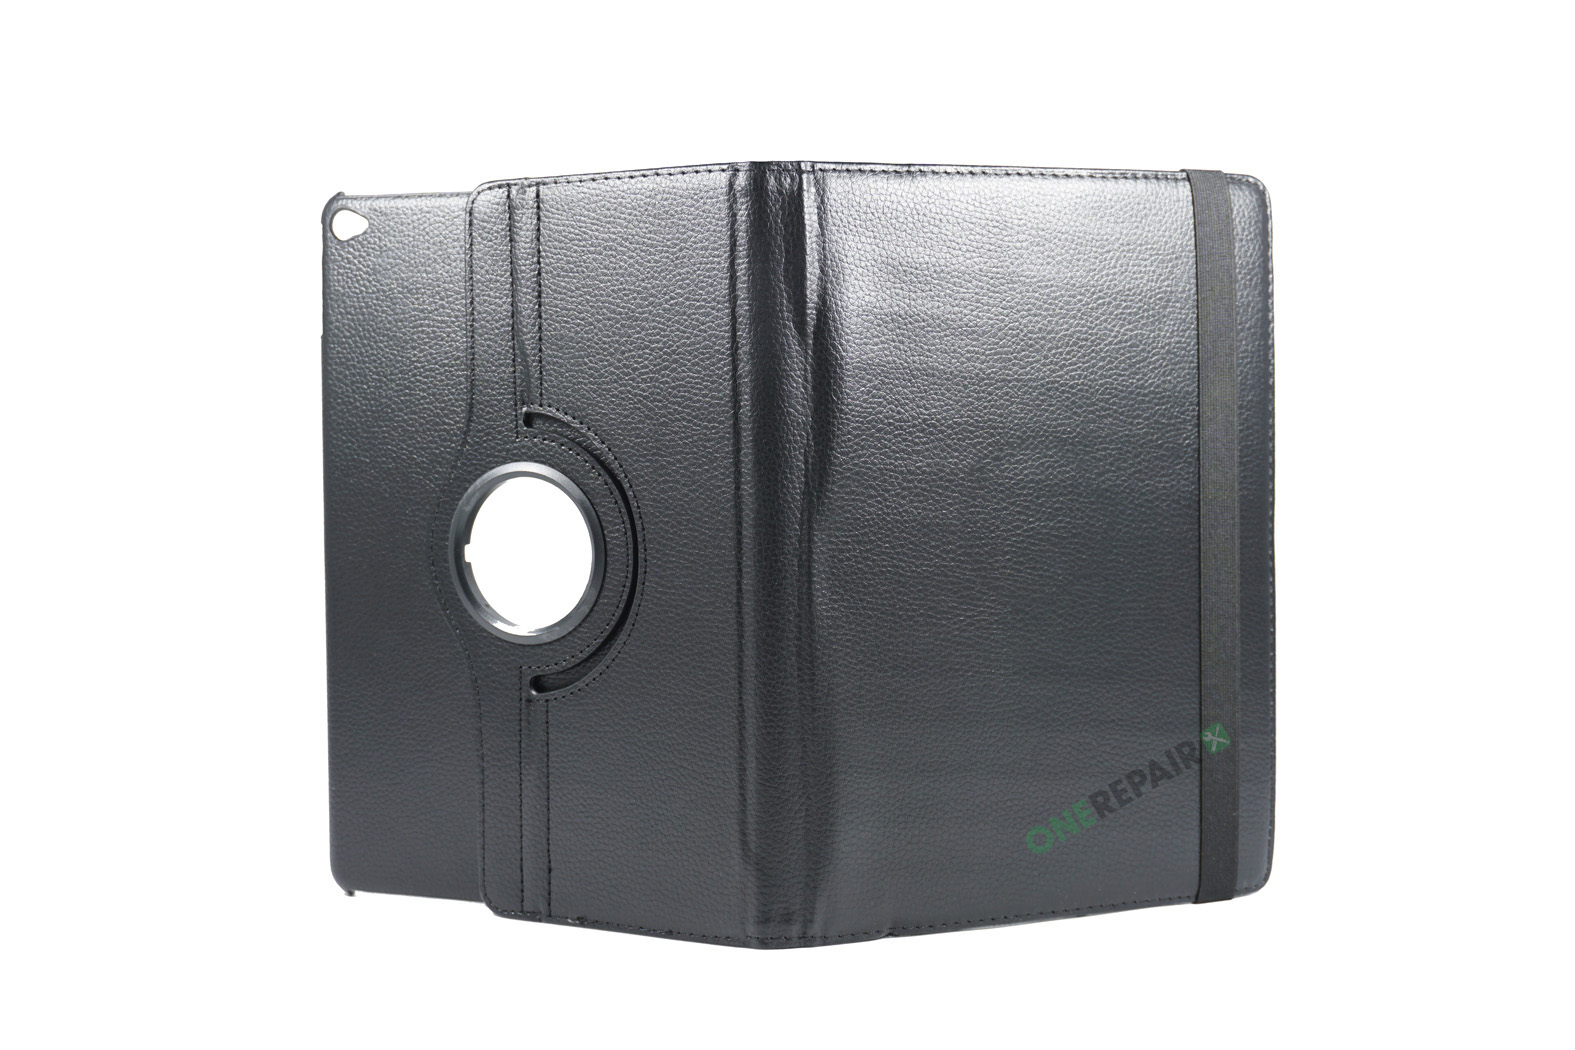 351017_iPad_Air_A1474_A1475_A1476_Flipcover_Cover_Sort_OneRepair_00004